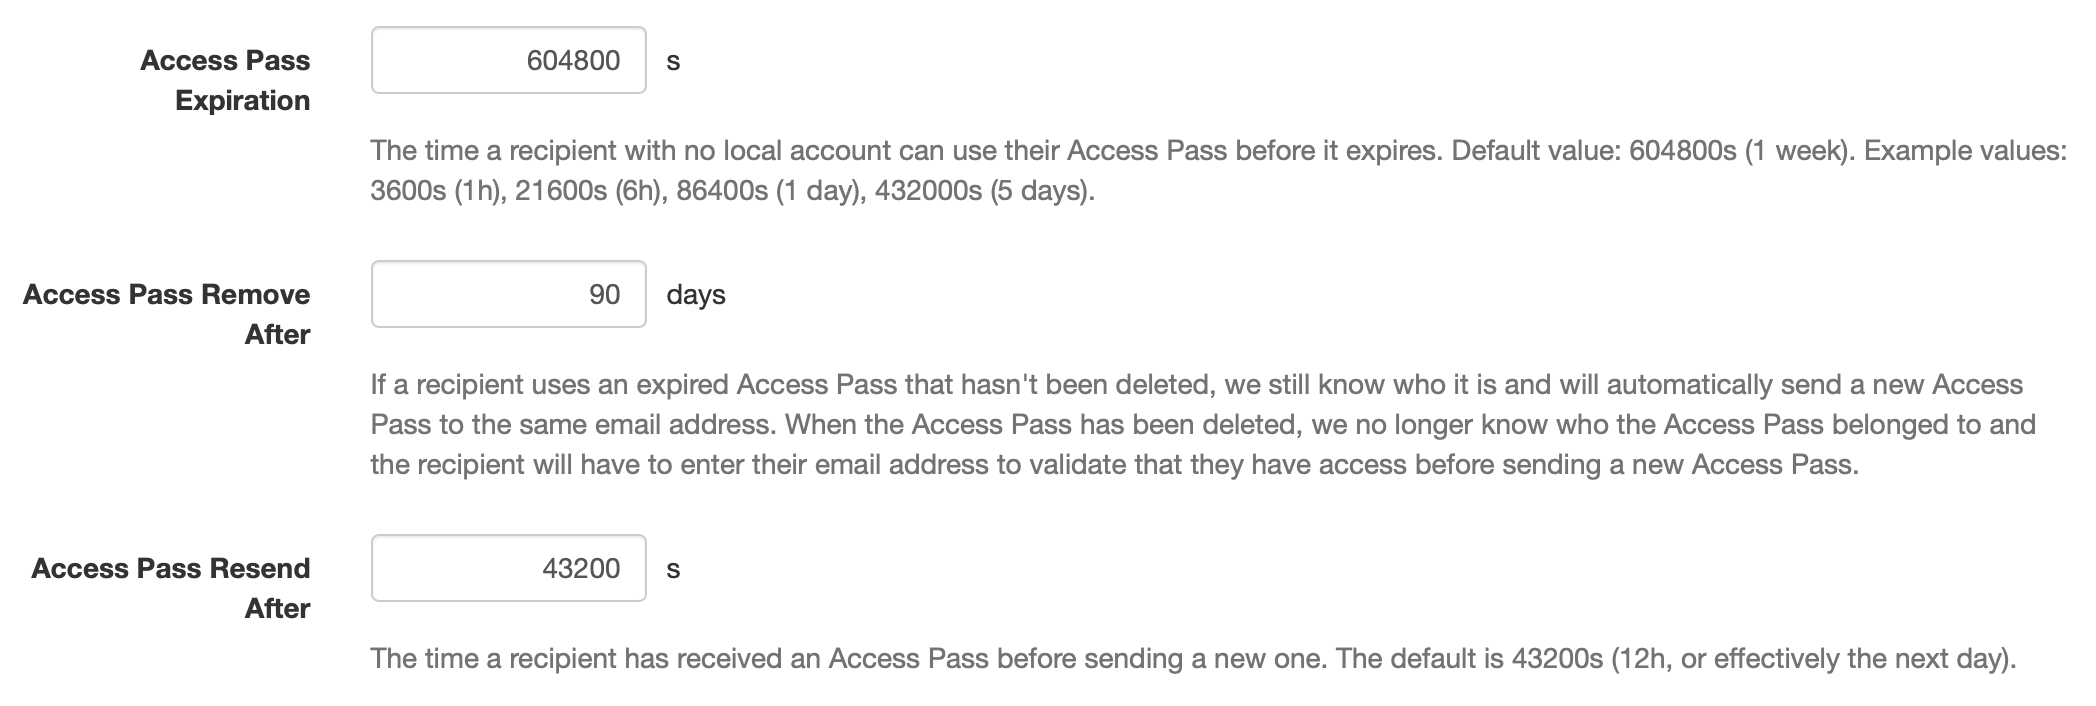 images/authentication/access_pass/access_pass_configuration.png